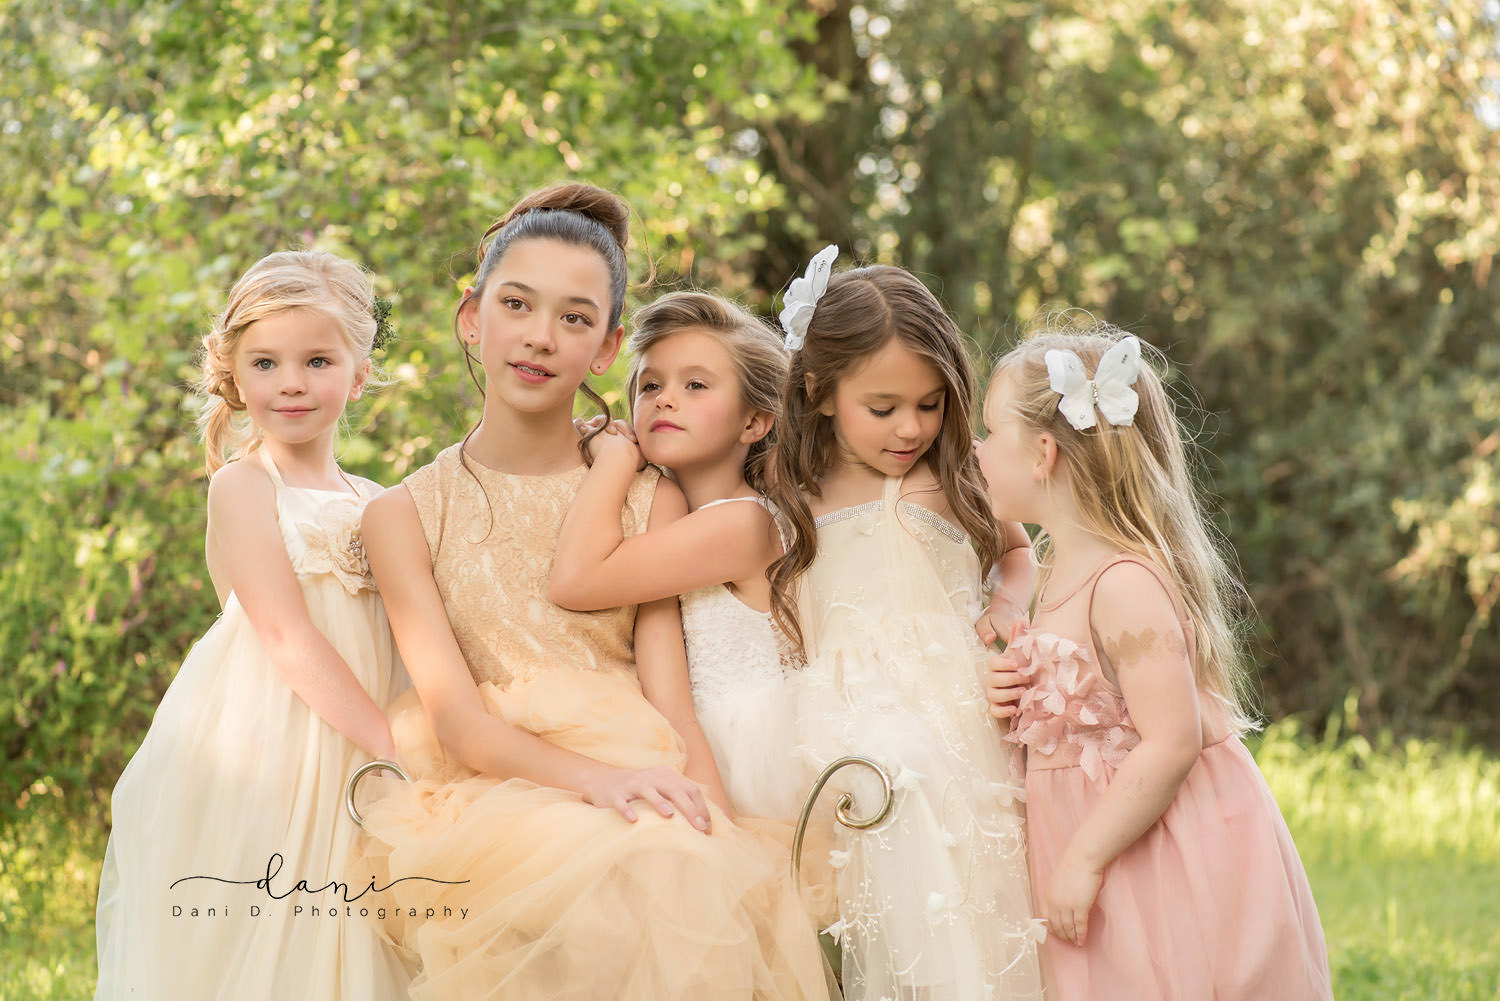 Child models - Northern California child and family photographer